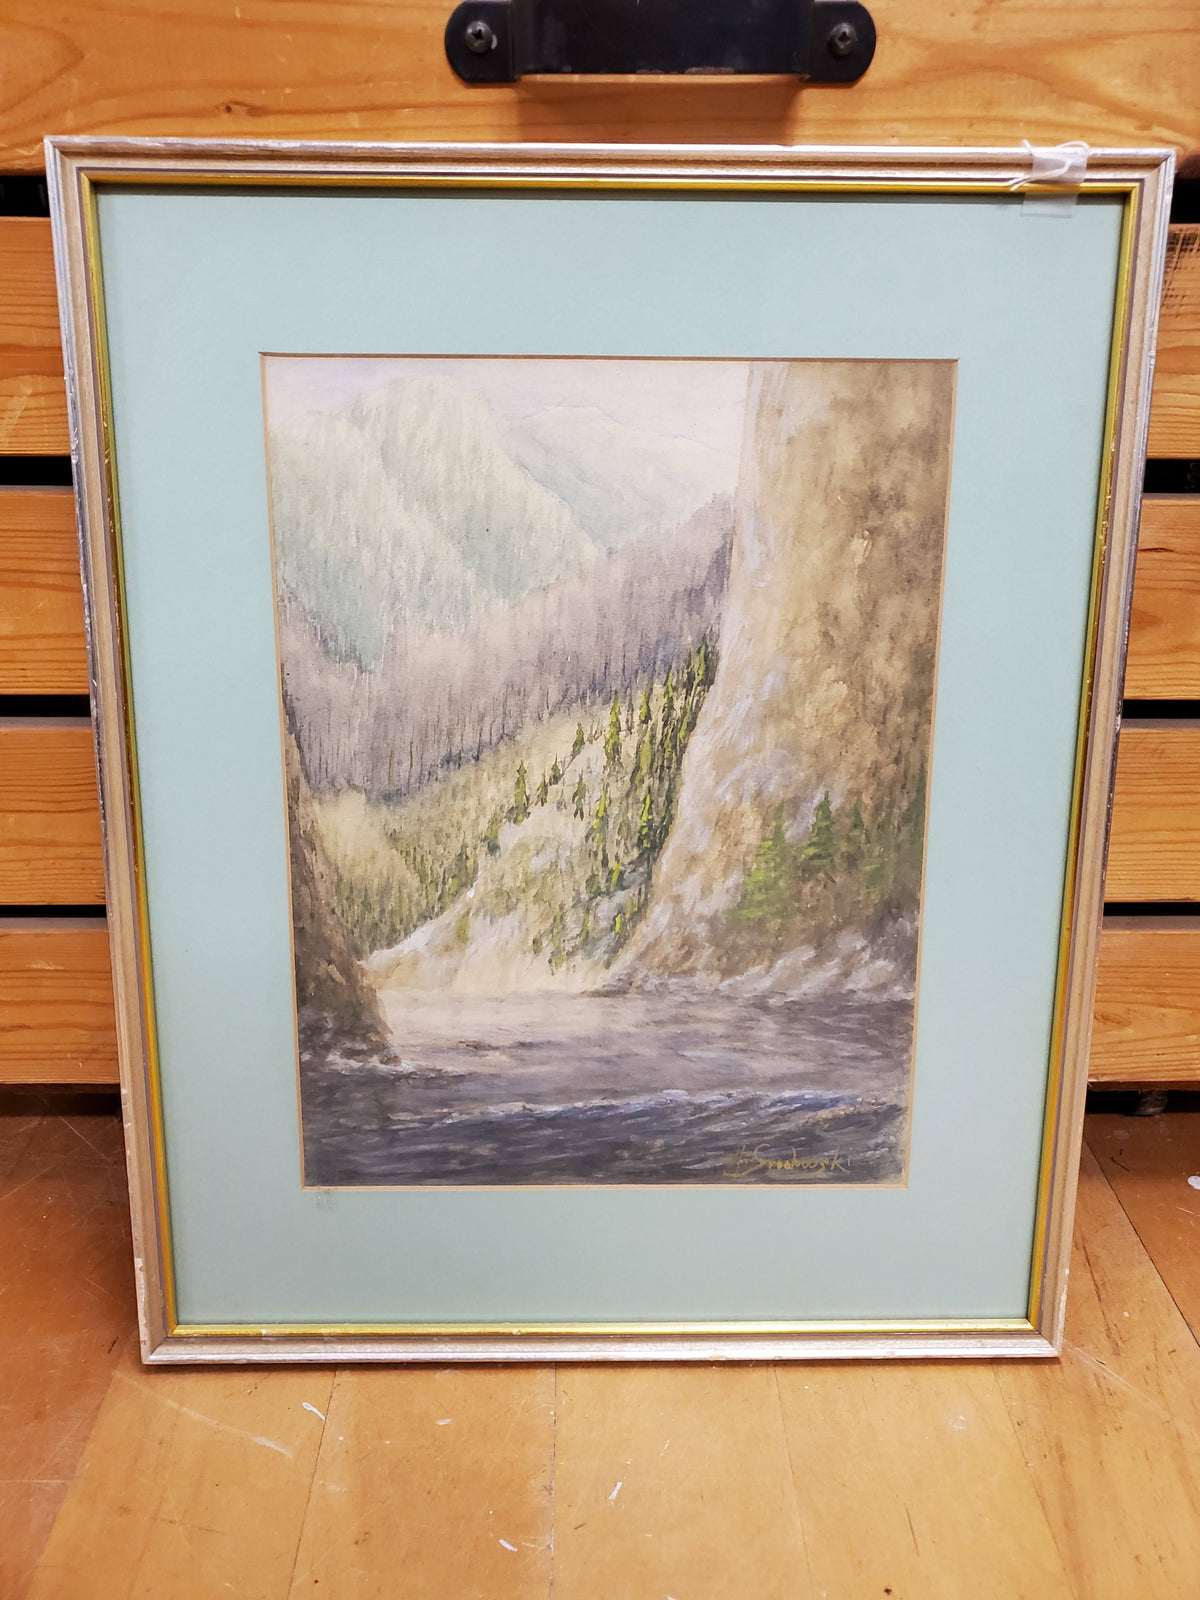 Framed watercolor print of mountain side